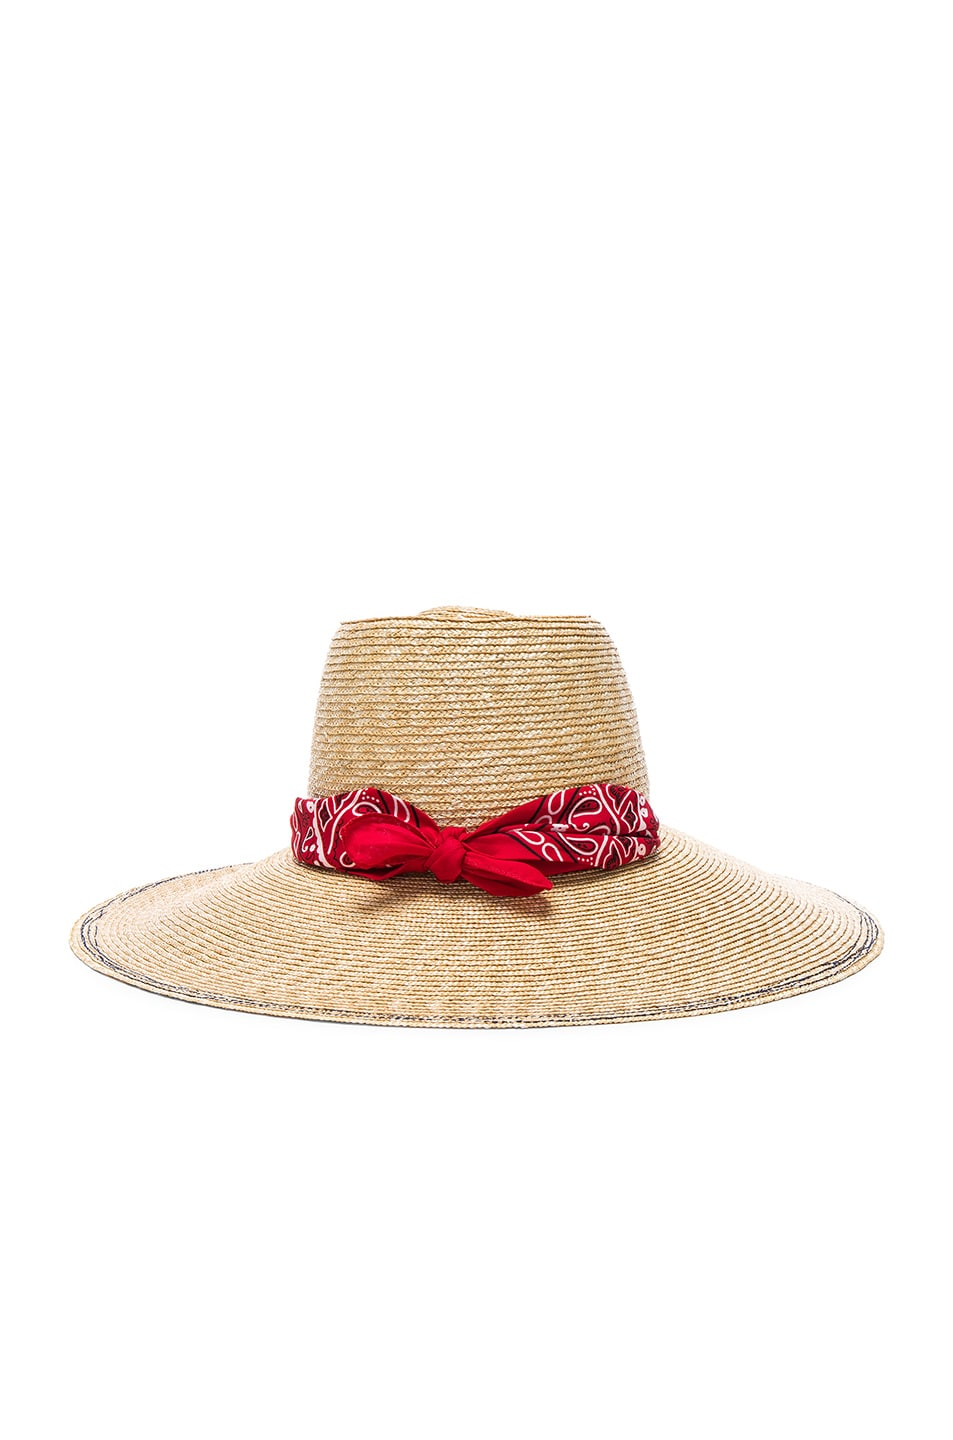 Image 1 of Lola Hats Windstock Hat in Natural & Red